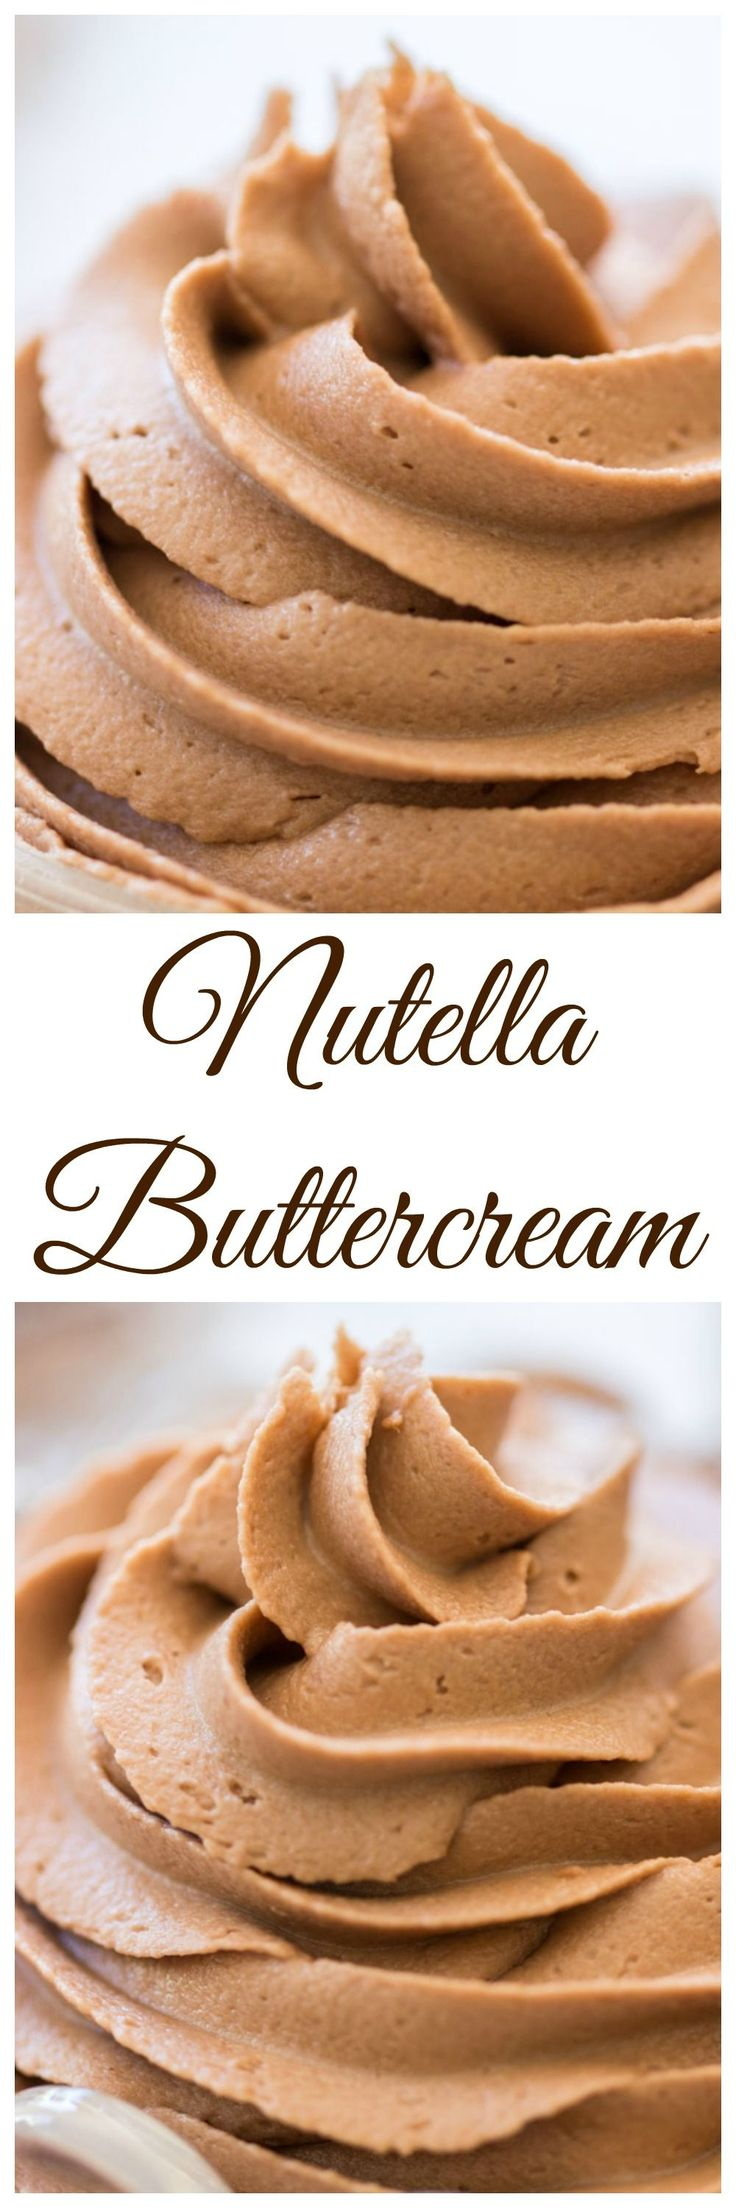 Nutella Buttercream pin